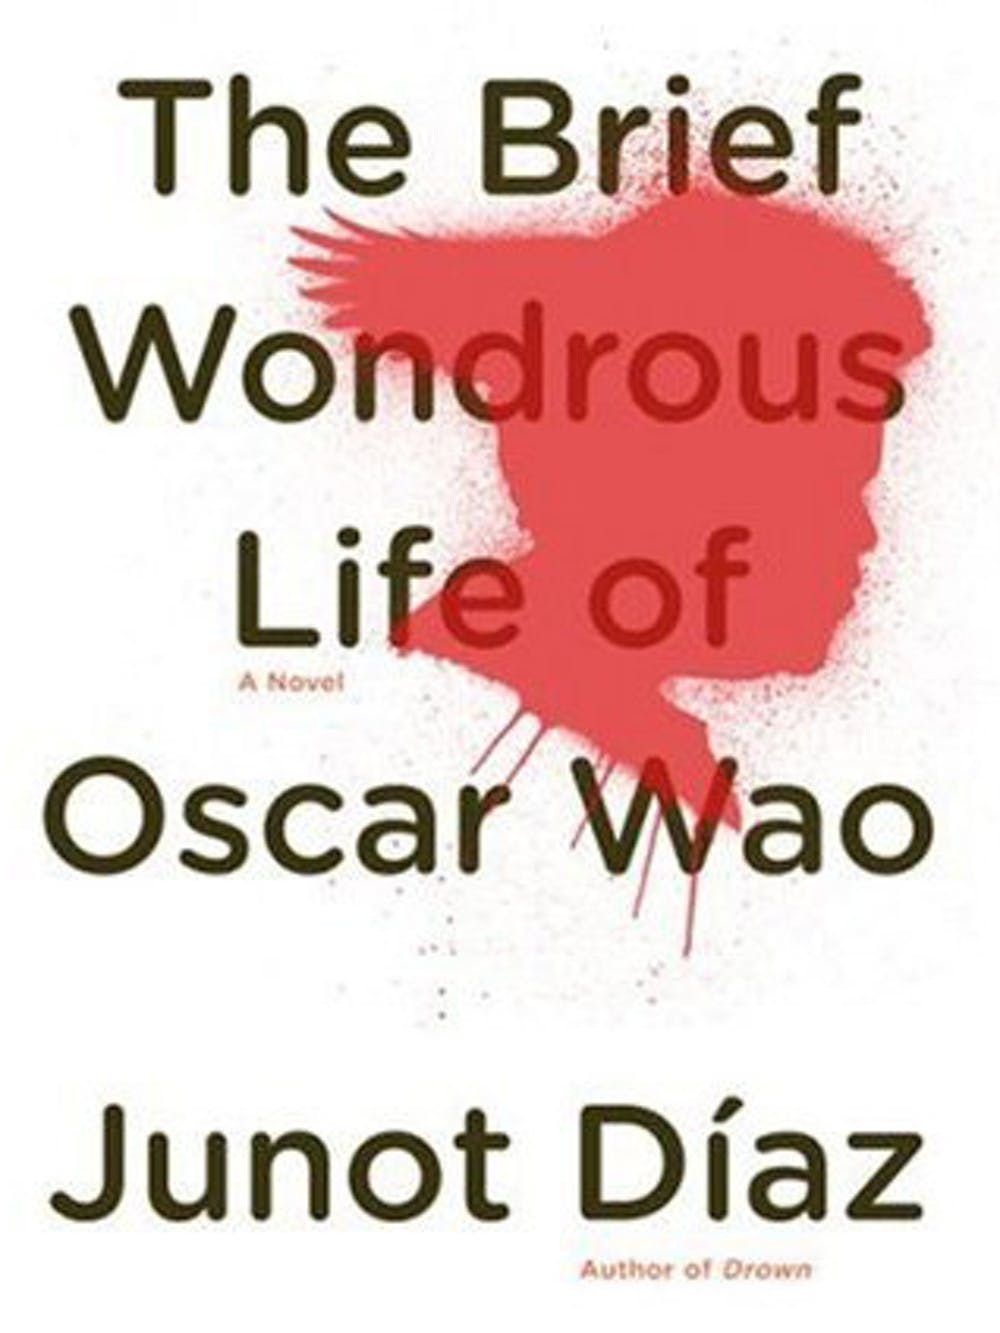 explainer magical realism first edition cover of the novel the brief wondrous life of oscar wao by junot diaz